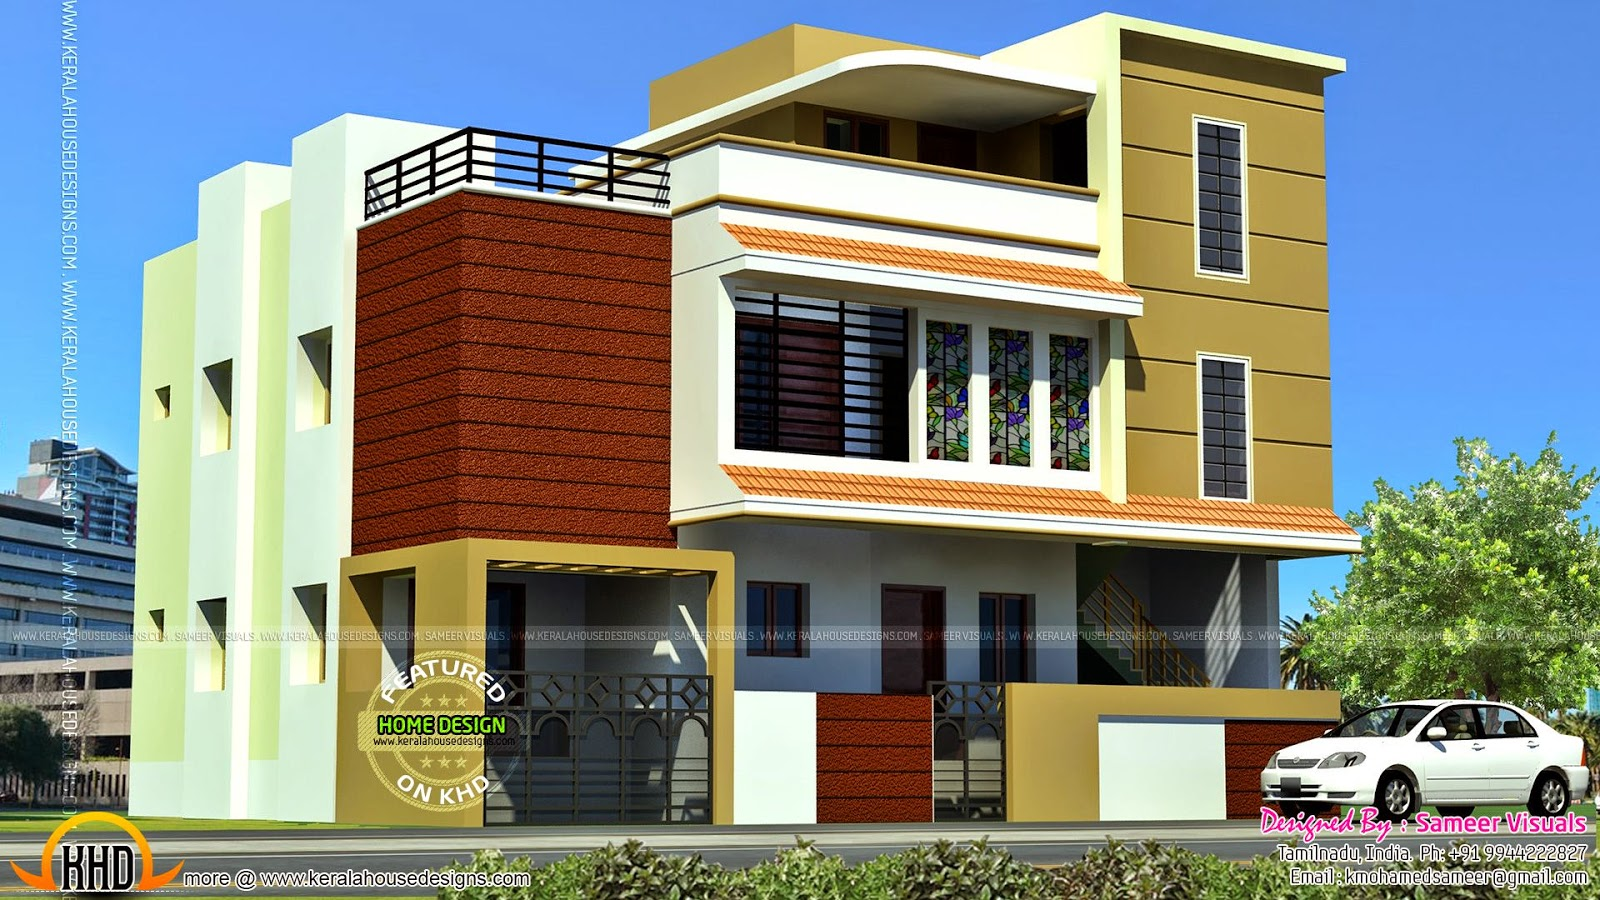 Tamilnadu model house kerala home design and floor plans for Model house photos in indian